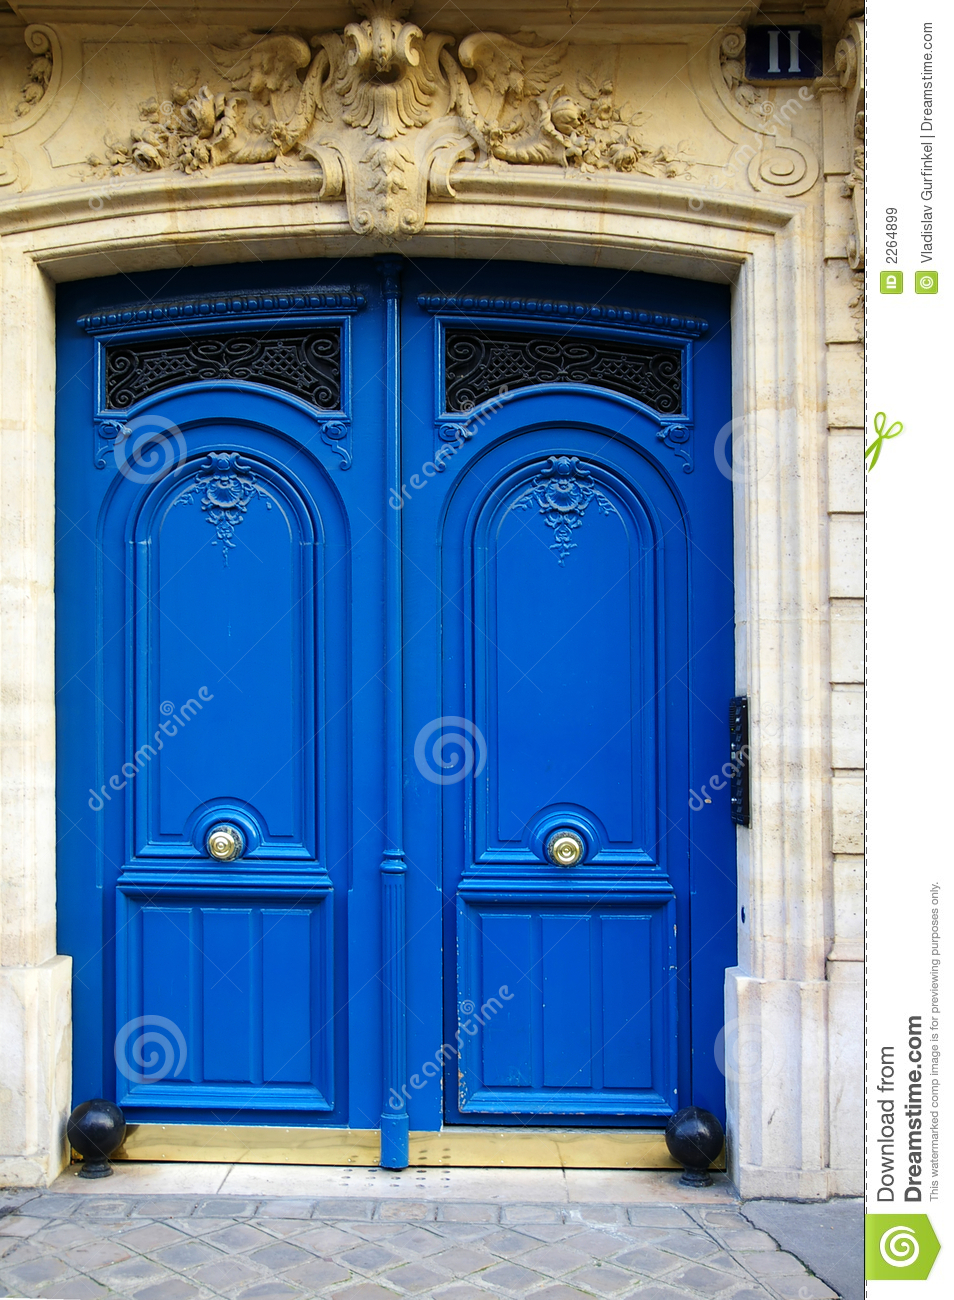 art deco door stock image image of exit closed ornate